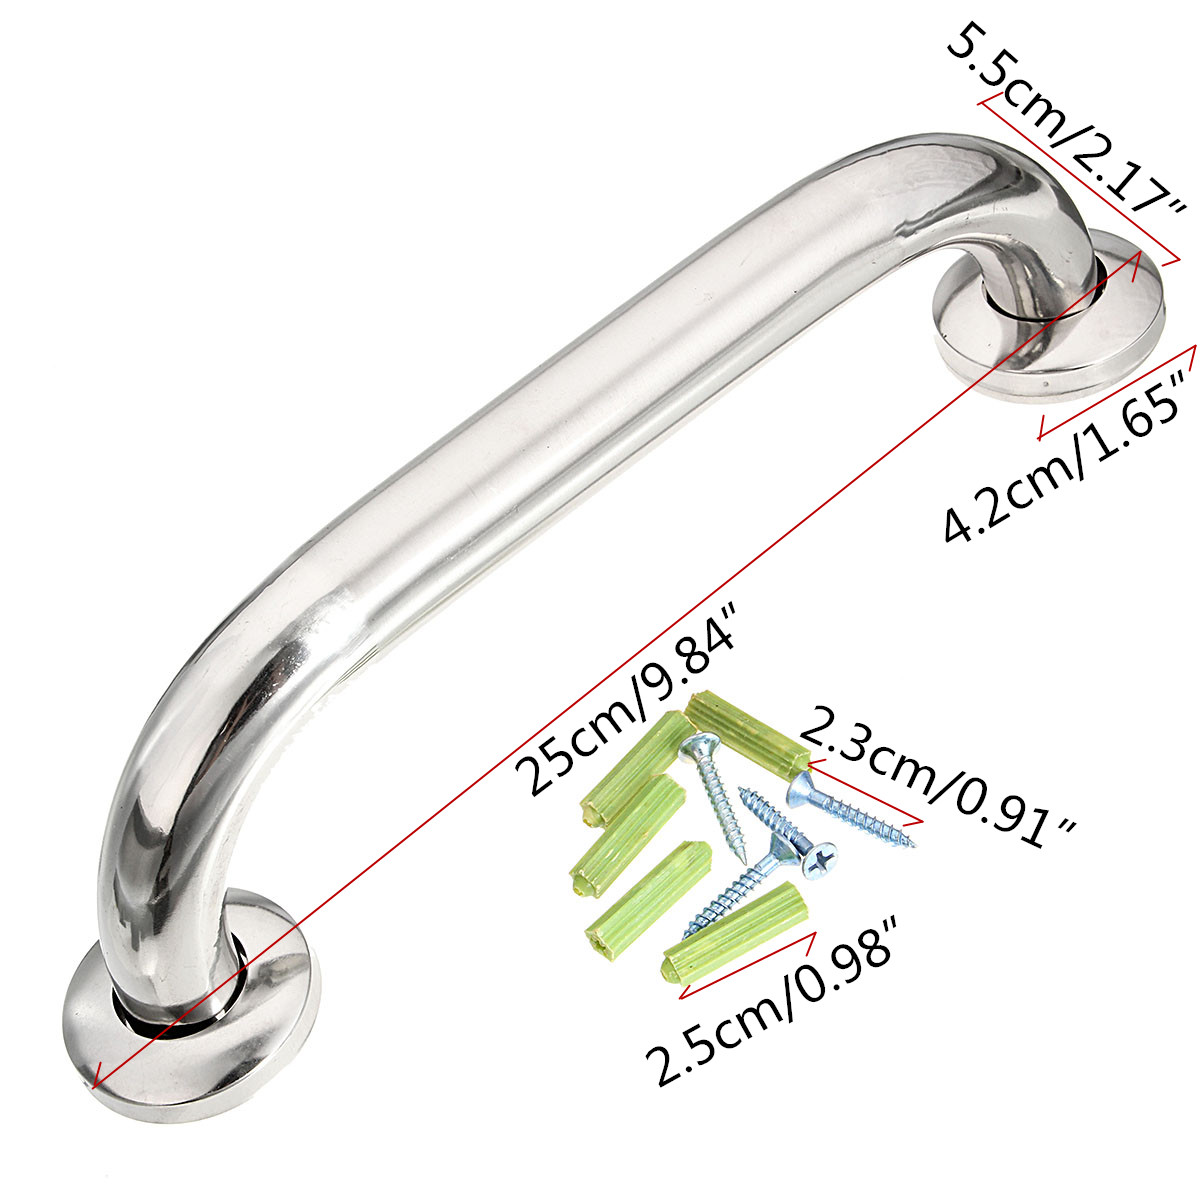 Bathroom Shower Tub Grab Bars Hand Grip Stainless Steel Safety ...